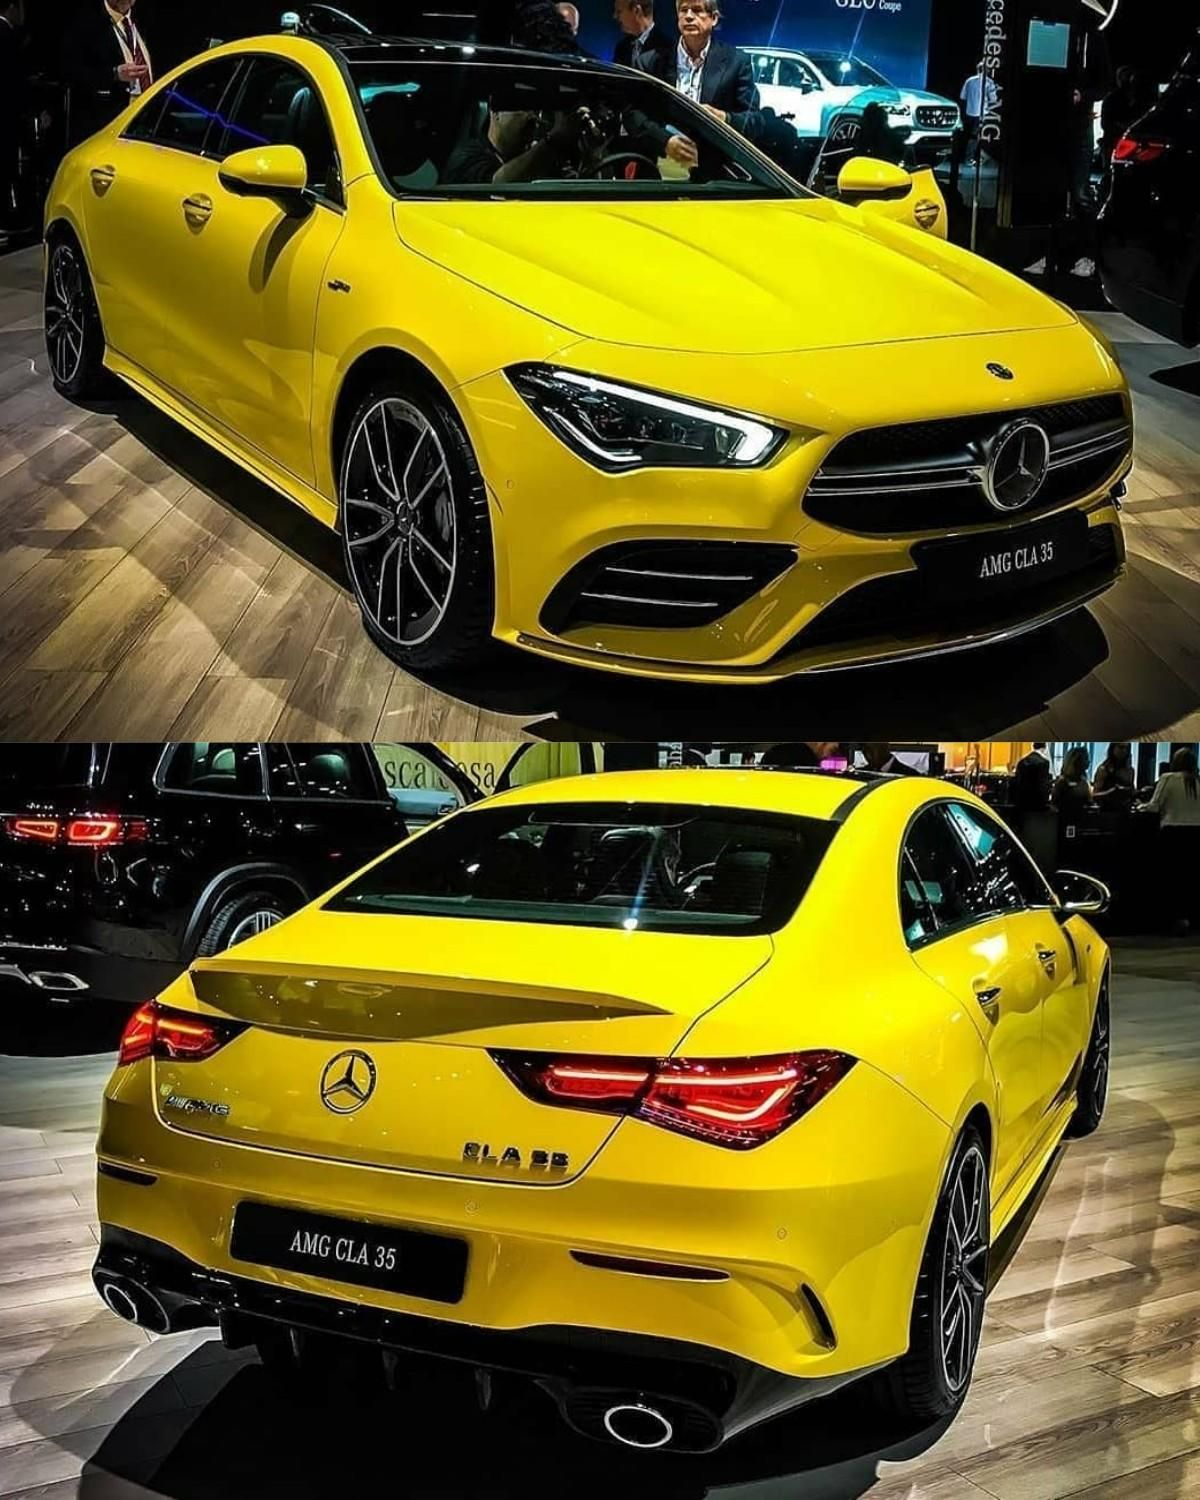 The All New Cla 35 Amg Coupe 4matic With Images Mercedes